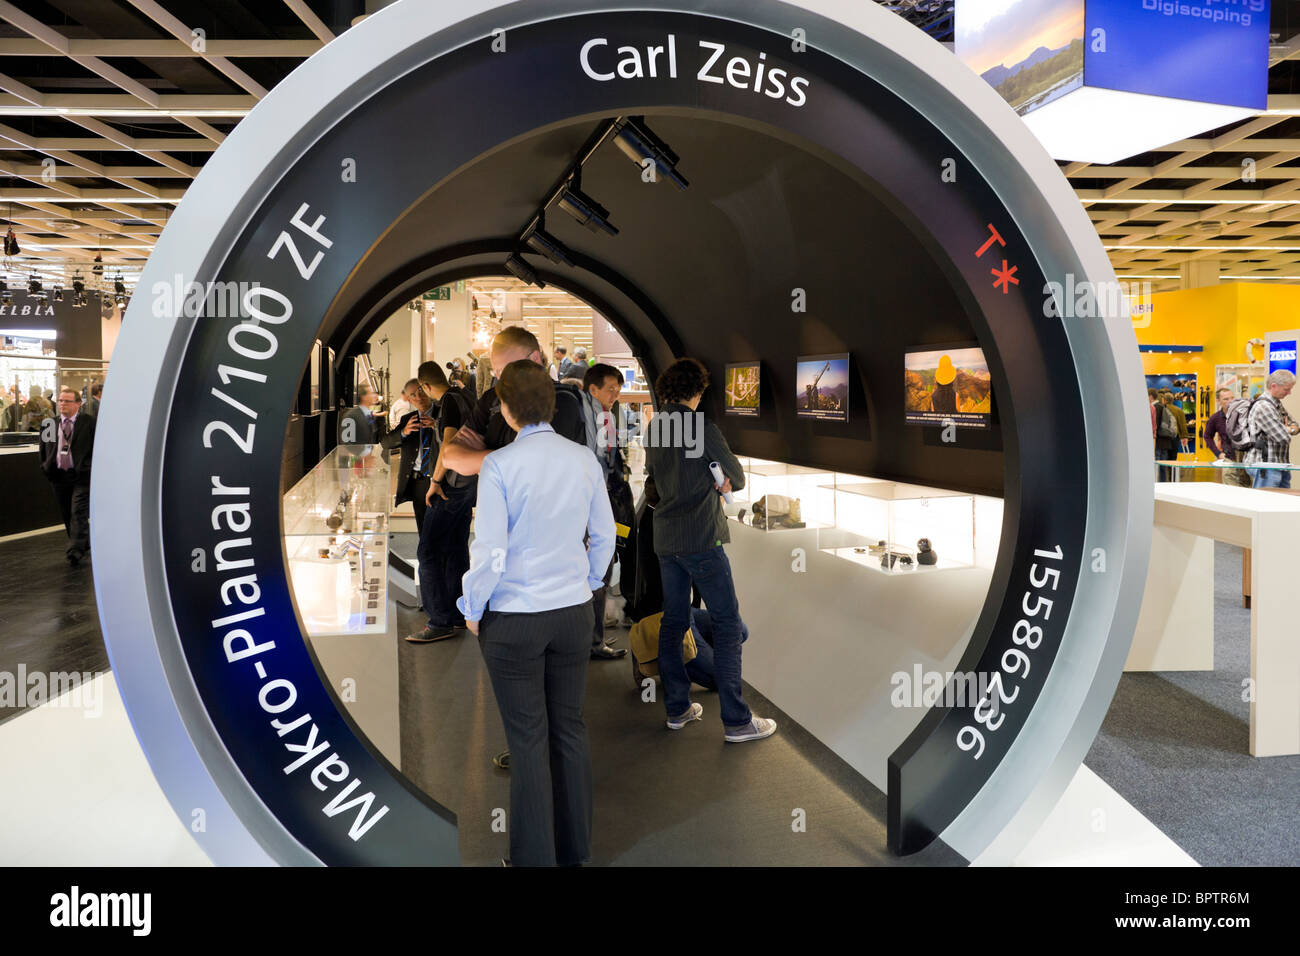 Visitors at the 2008 Photokina camera trade show in Cologne Koeln Germany. Carl Zeiss booth in the form of a Macro - Stock Image